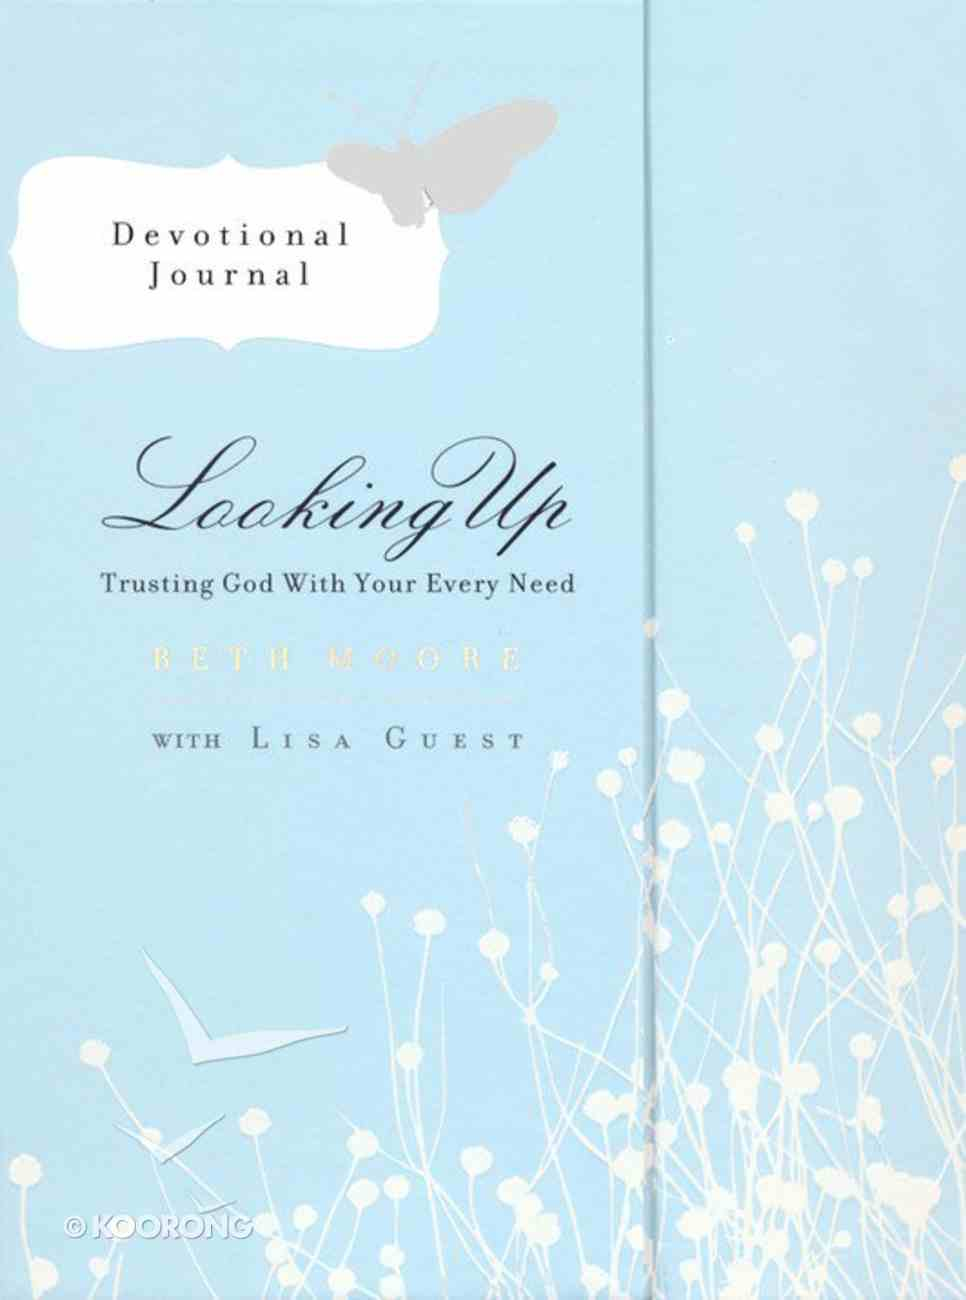 Looking Up: Devotional Journal Hardback